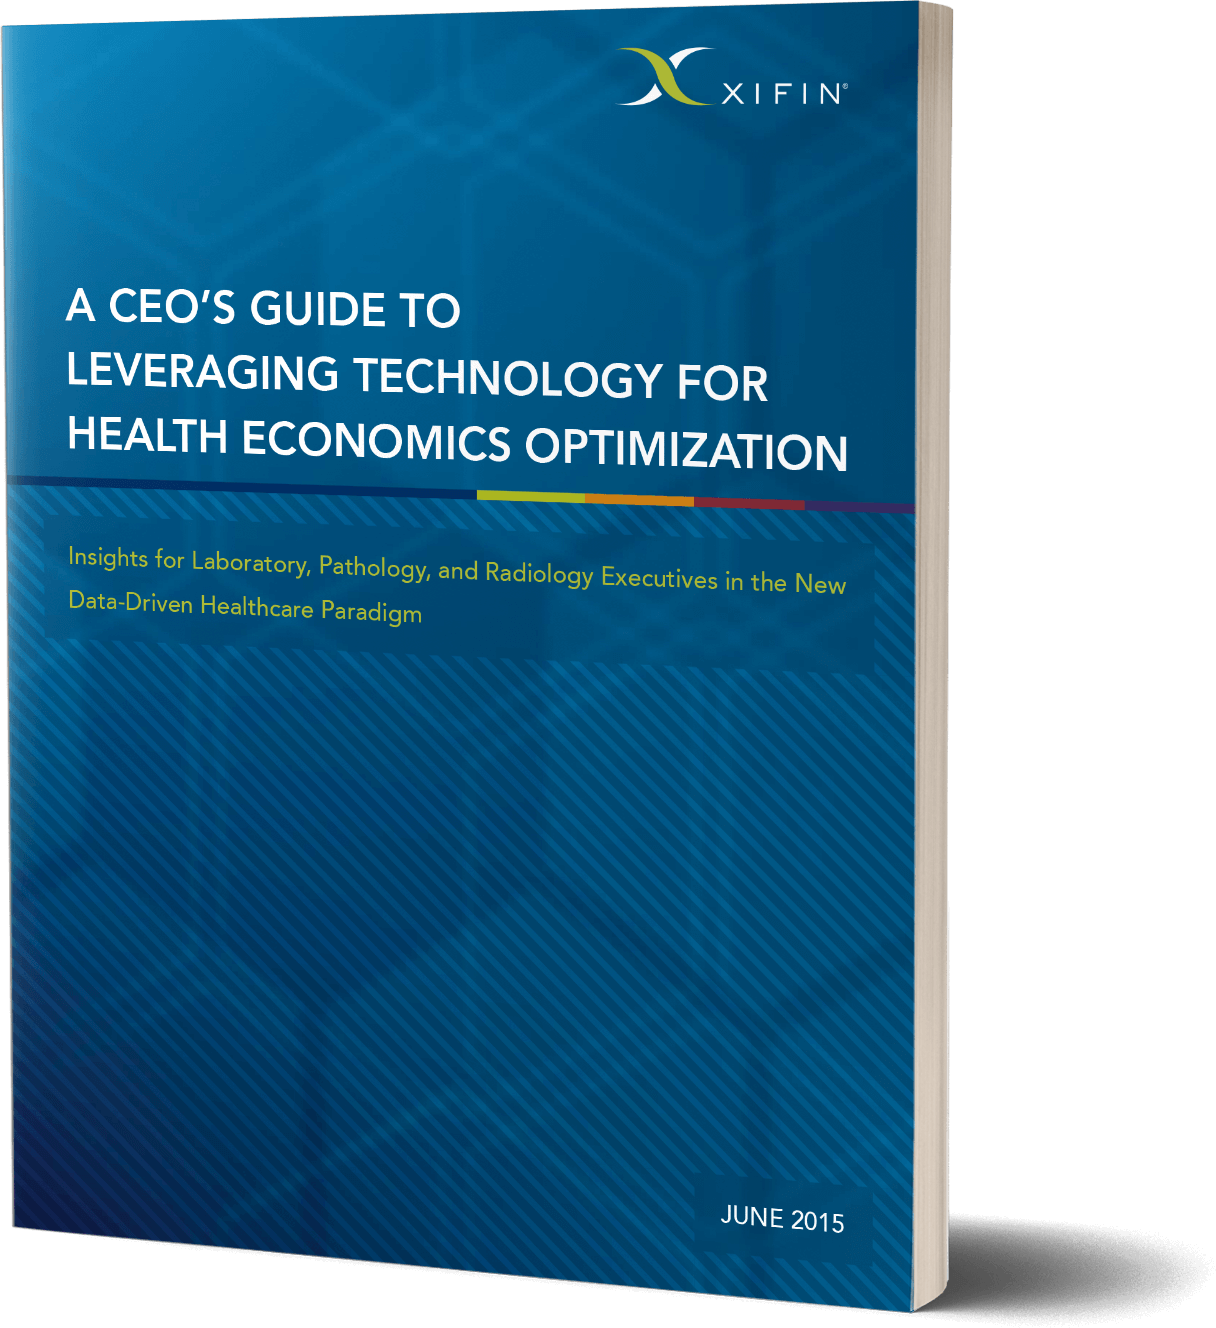 A CEO's Guide to Leveraging Technology for Health Economics Optimization